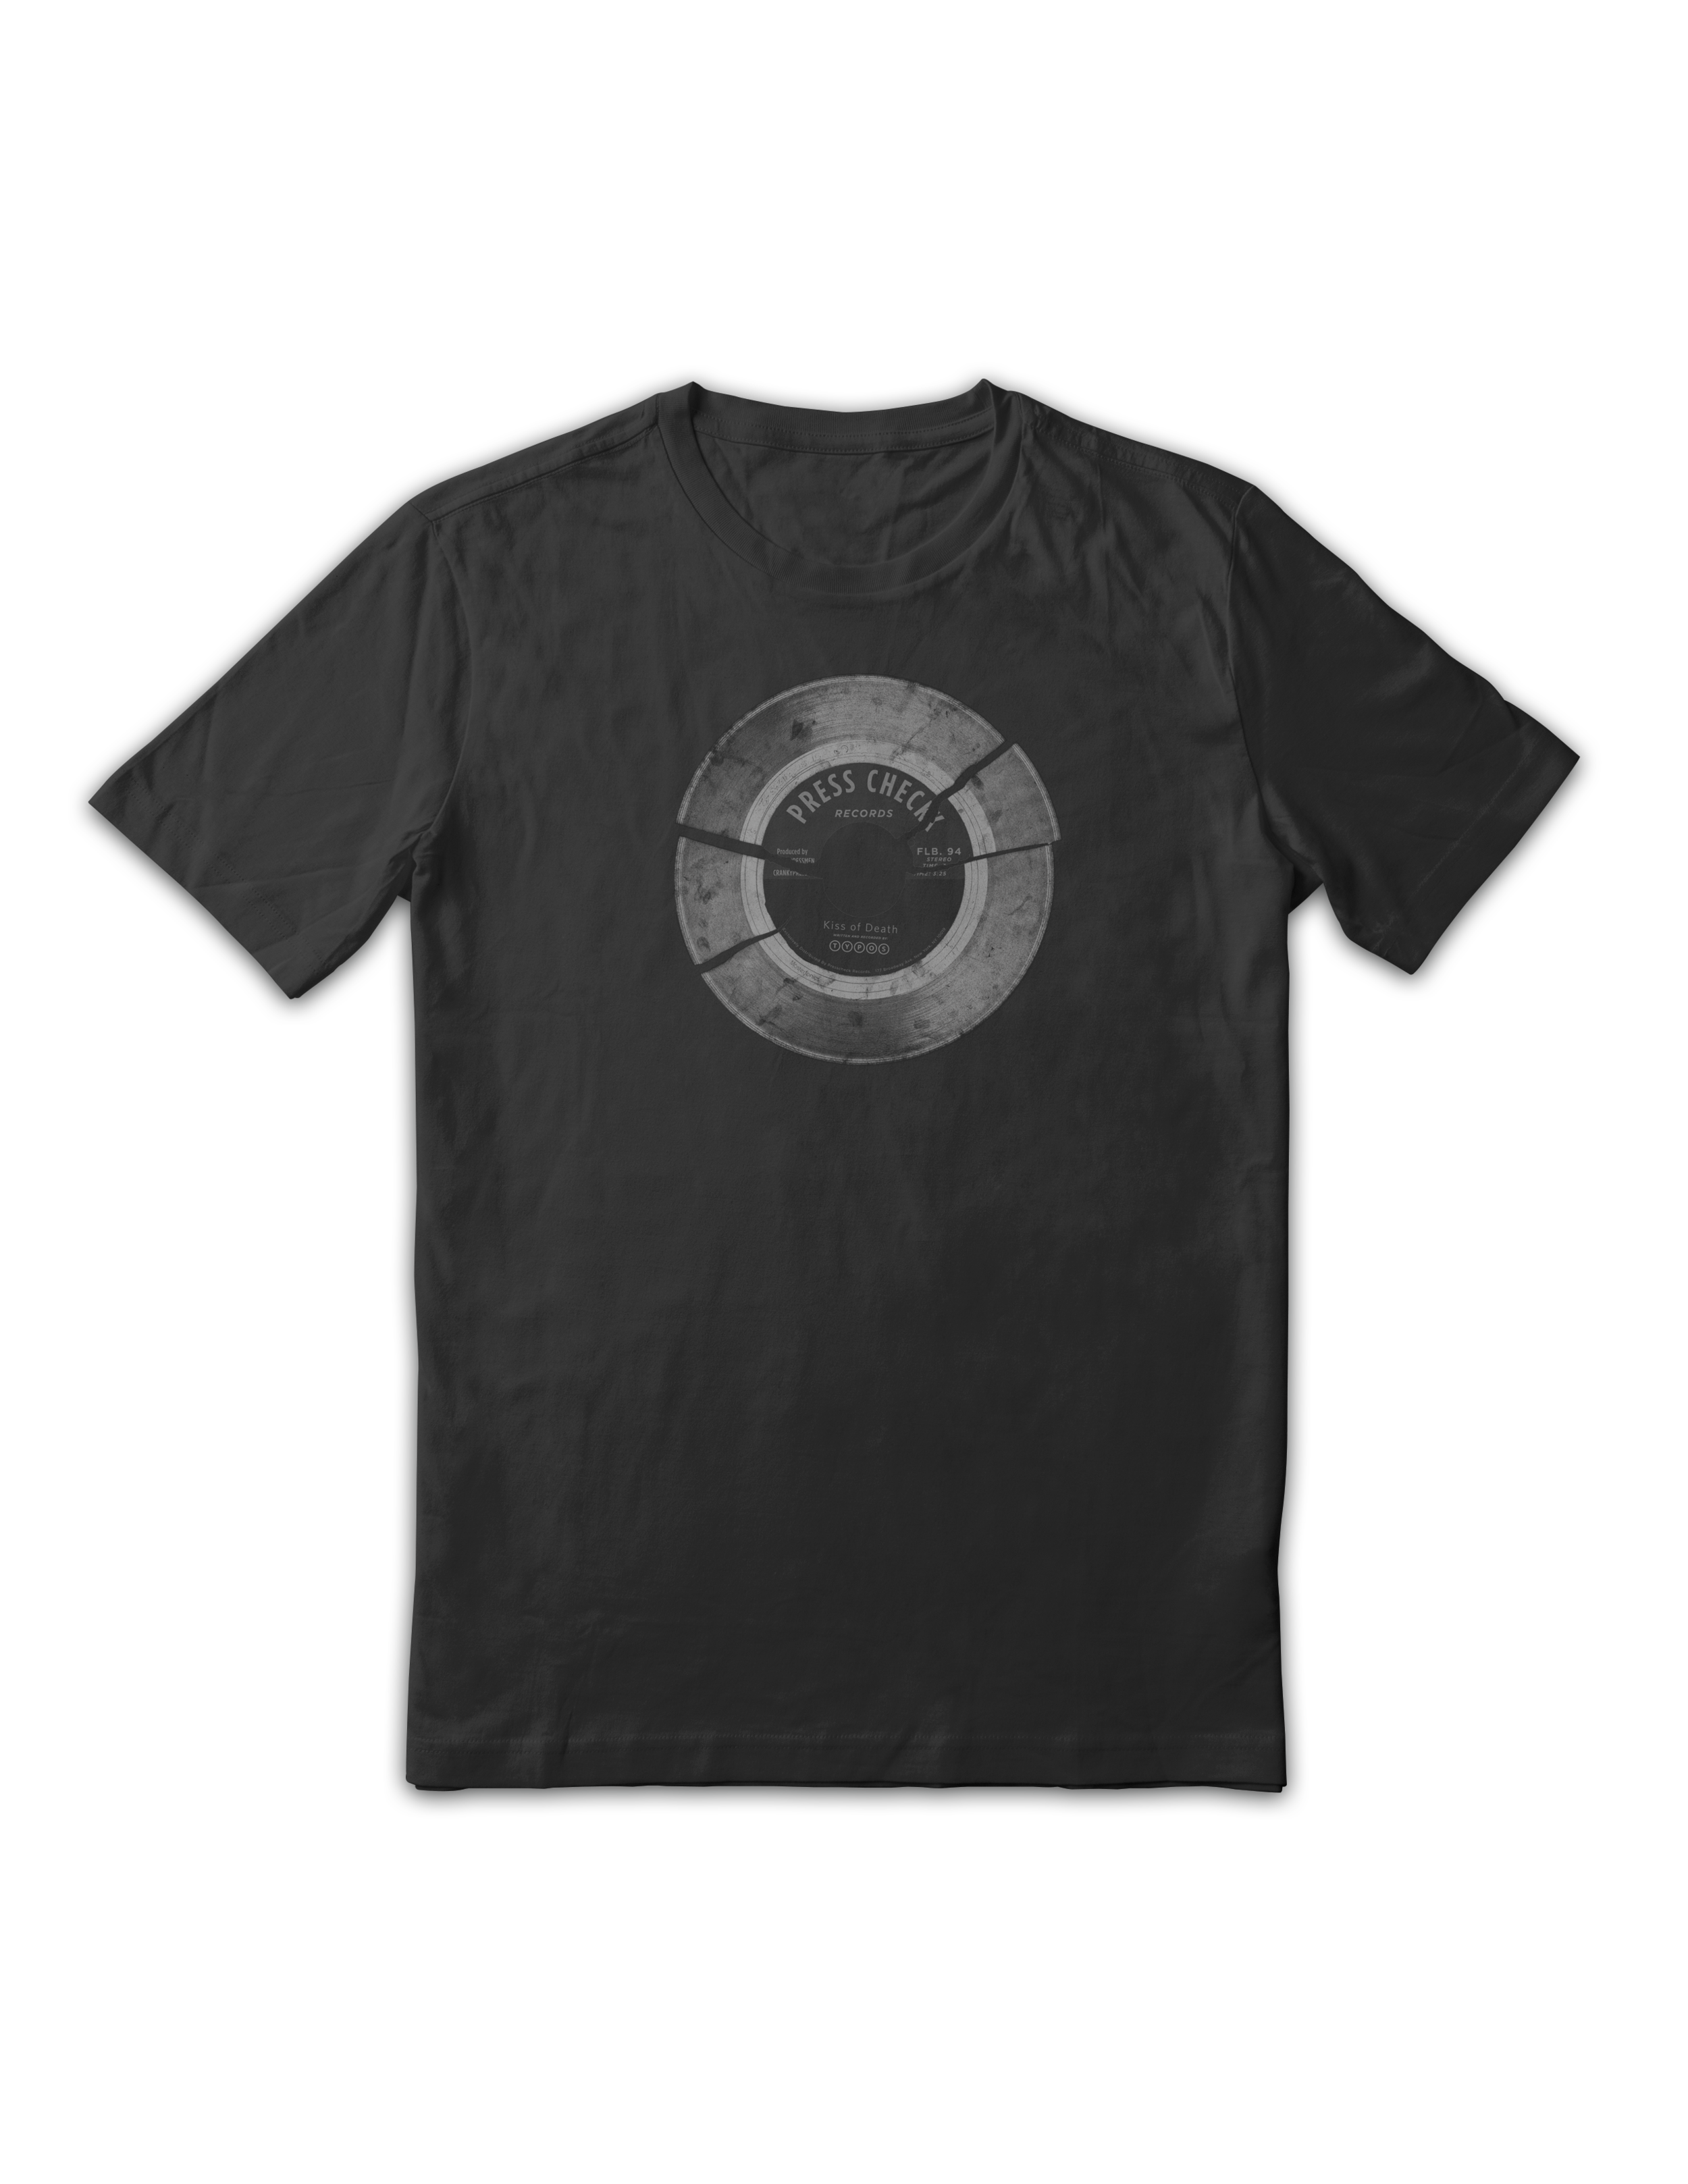 Art-and-culture_event-branding_AIGA-PGH365_Bootstrap-Design-Co_tshirt1.png